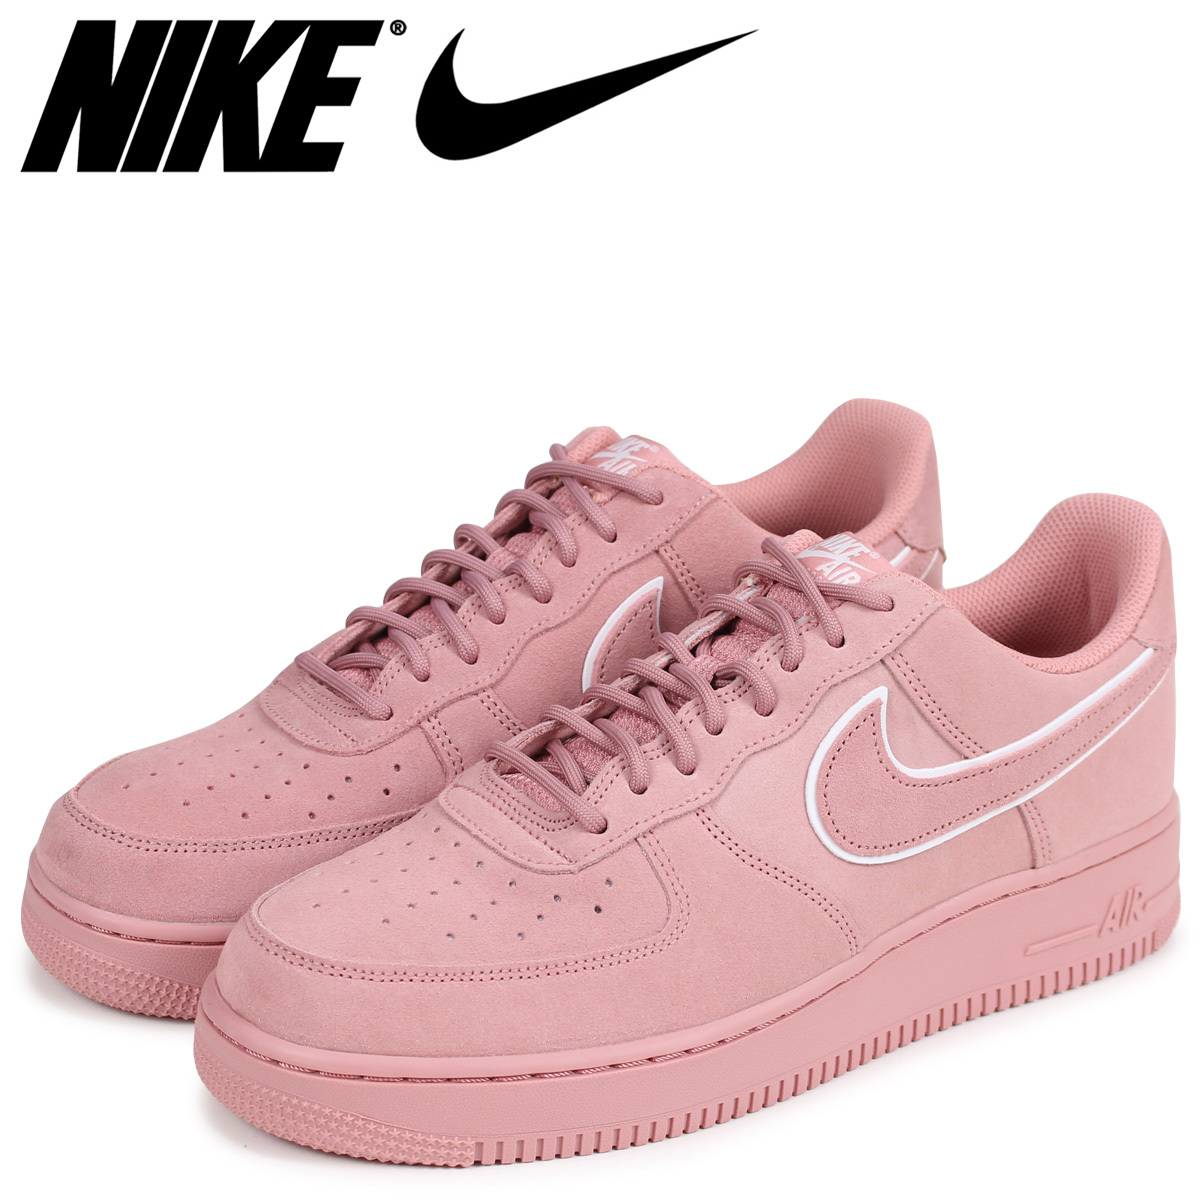 808bf961d2bc NIKE Nike air force 1 07 LV8 sneakers men AIR FORCE 1 SUEDE AA1117-601 pink   load planned Shinnyu load in reservation product 3 30 containing